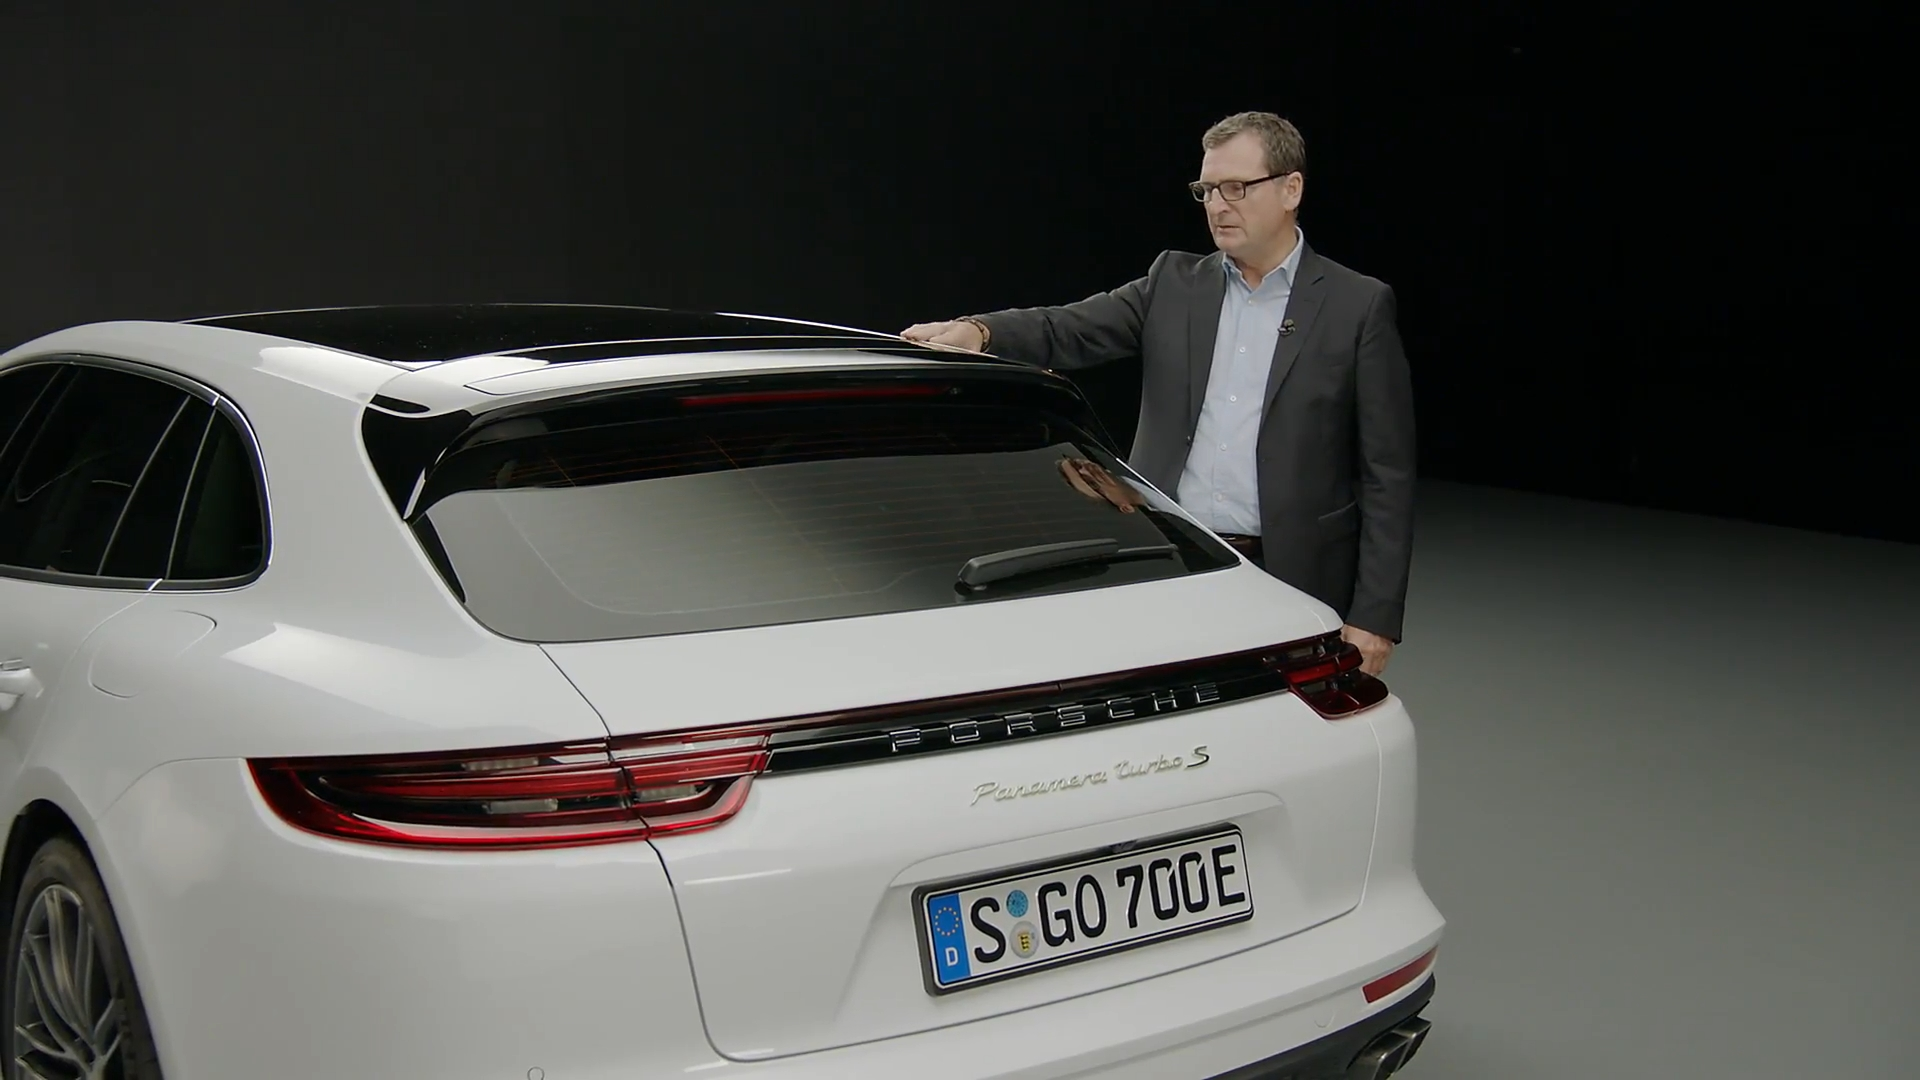 Porsche Panamera Turbo S E Hybrid Sport Turismo Digital Press Conference en